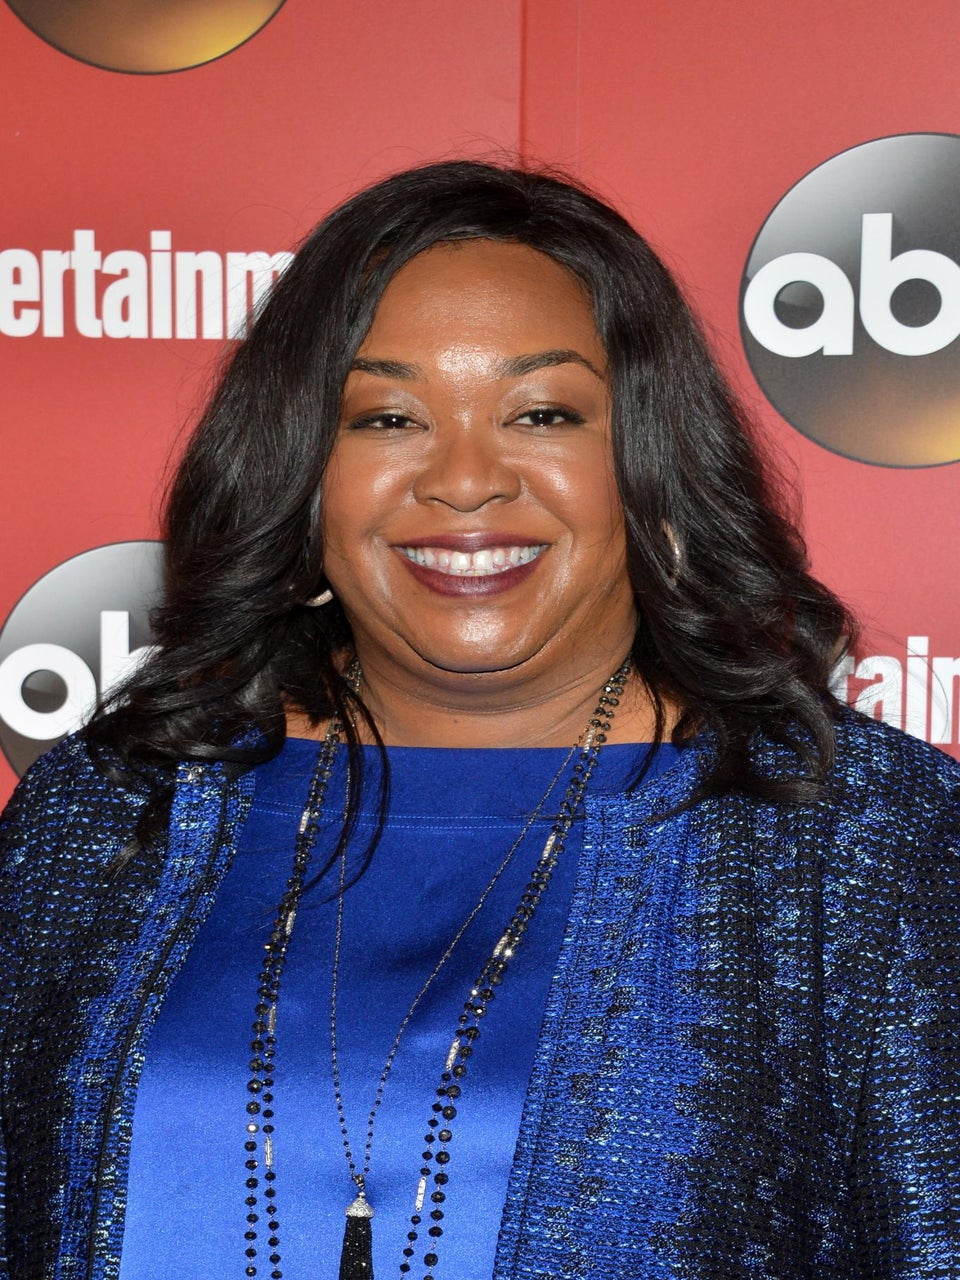 See Shonda Rhimes' Brilliant Response to Being Called An 'Angry Black Woman' By A TV Critic